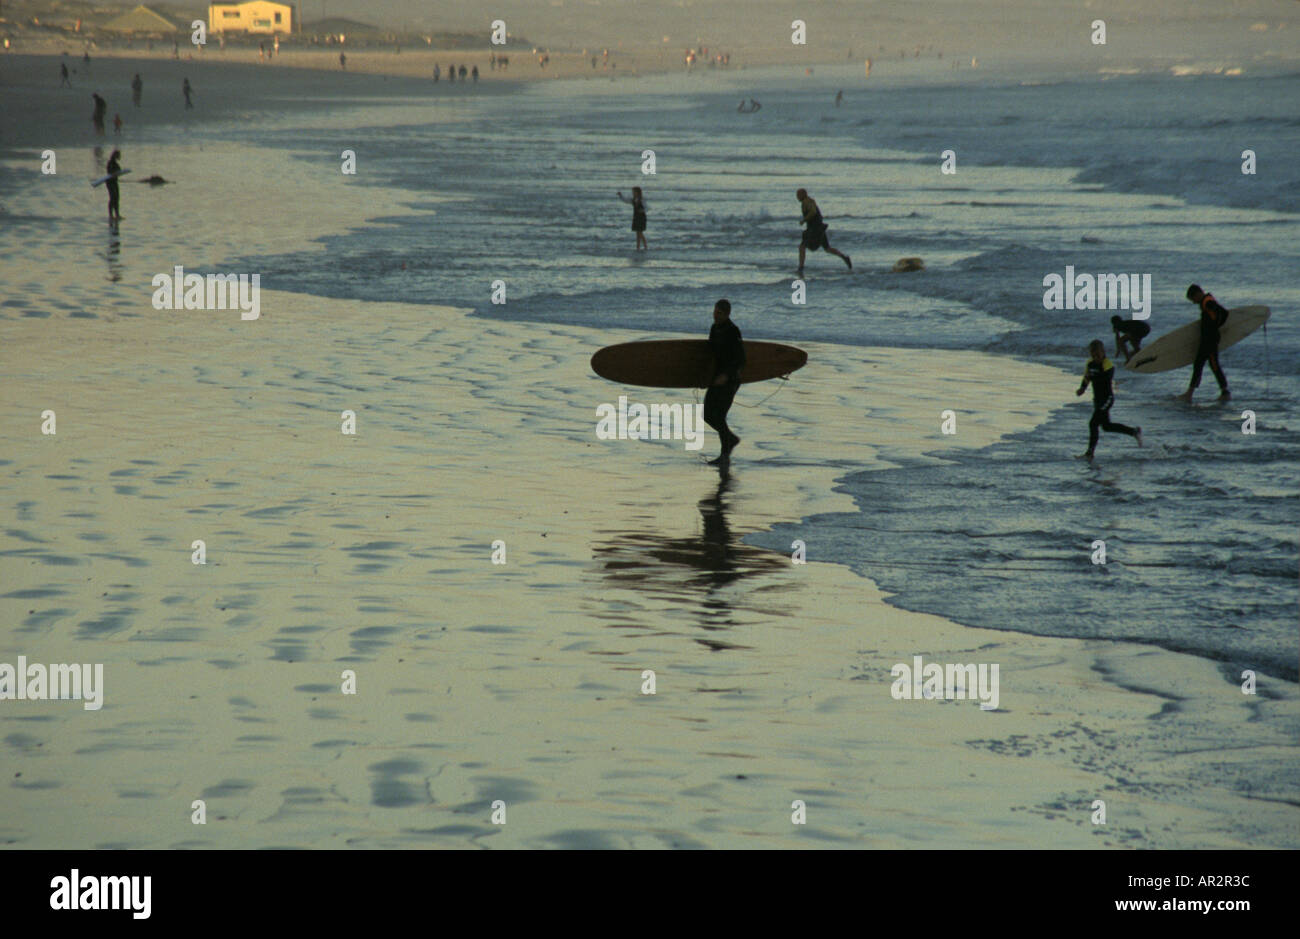 Surfers on False Bay Seaboard, Cape Town, Western Cape, South Africa. - Stock Image